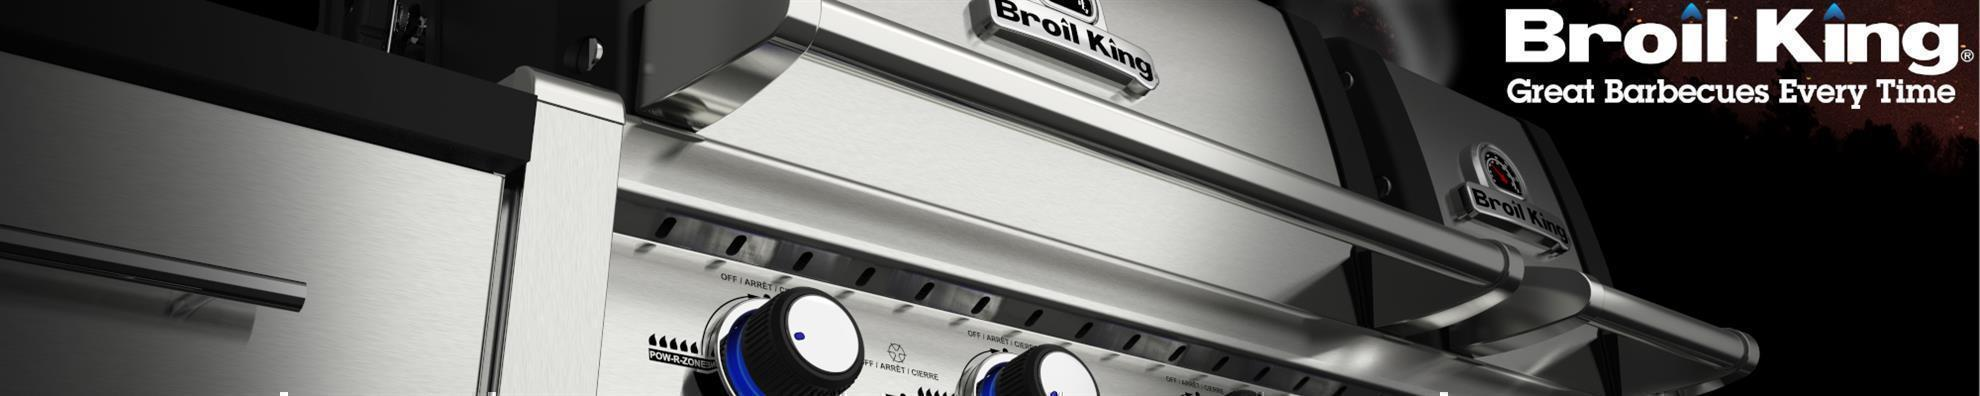 Broil King - GRILLHANDSCHUH